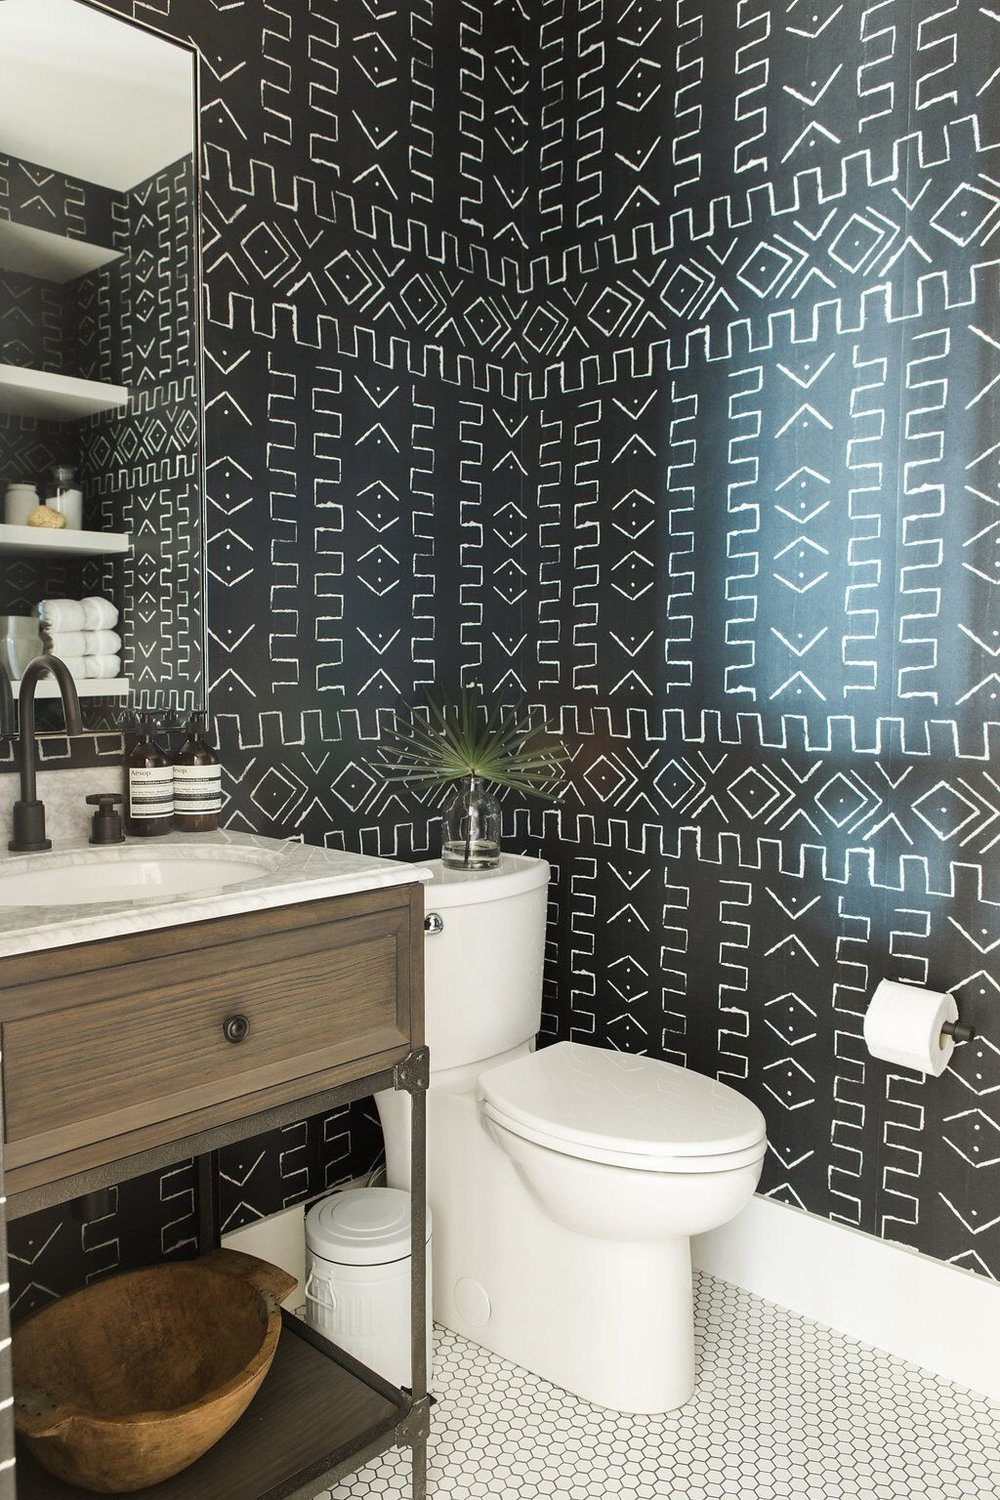 Dramatic tribal bathroom wallpaper